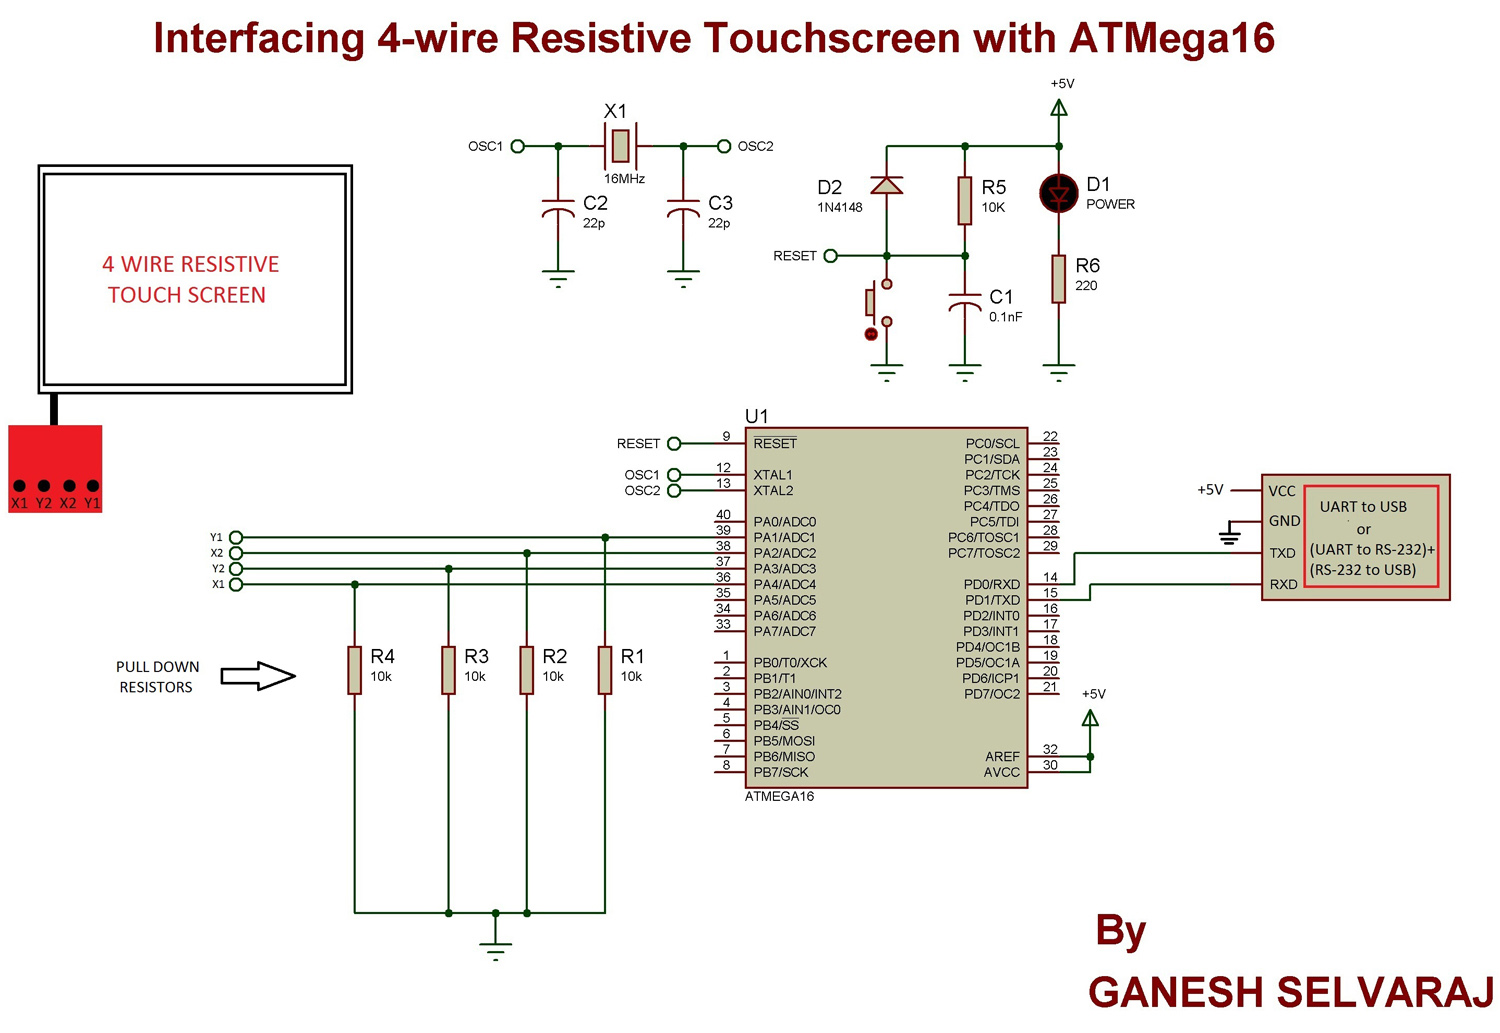 Interfacing 4-wire Resistive Touchscreen with ATMega16 Microcontroller schematic